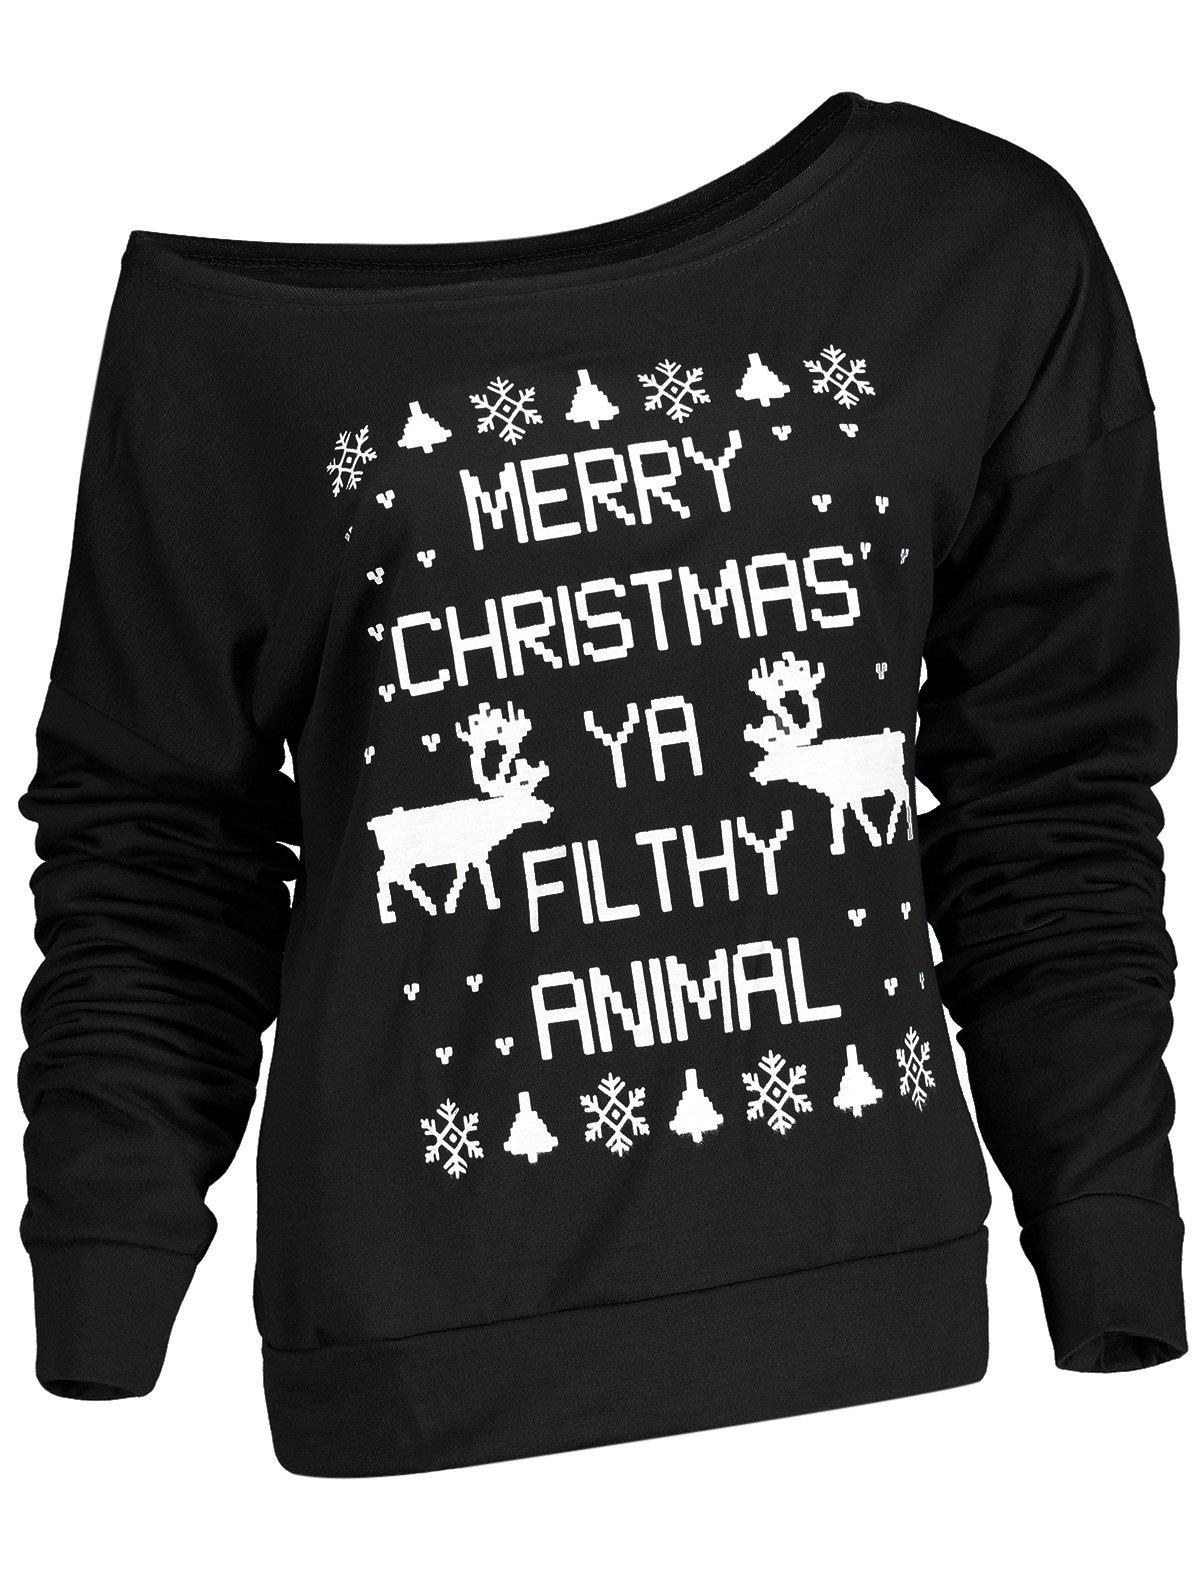 Stylish Letter and Snowflake Print Pullover Christmas Sweatshirt For Women christmas snowflake letter print plus size sweatshirt